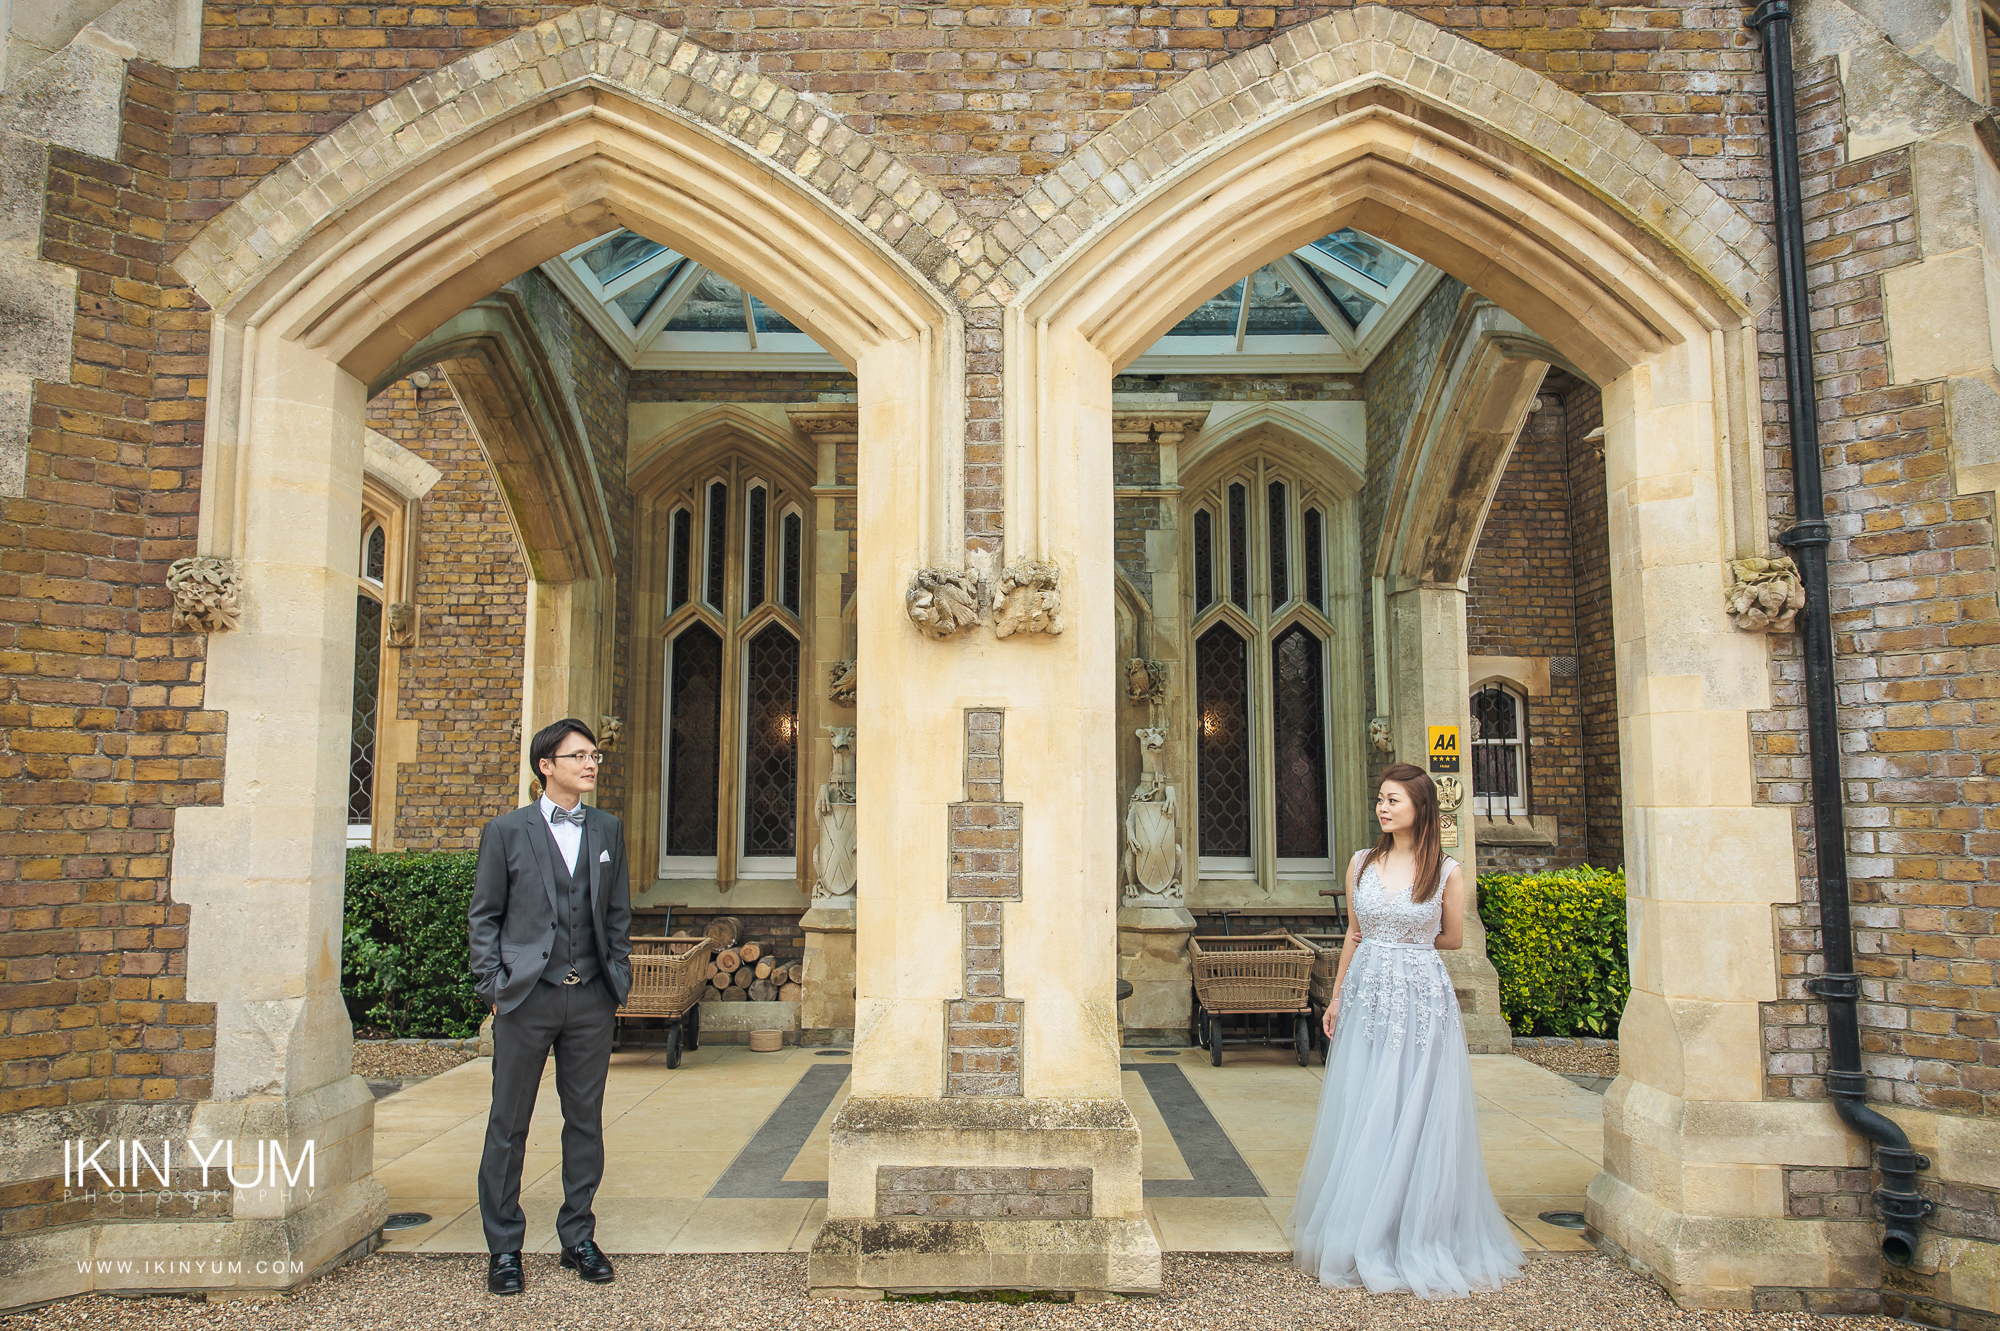 The oakley court Pre-Wedding Shoot - Ikin Yum Photography-056.jpg